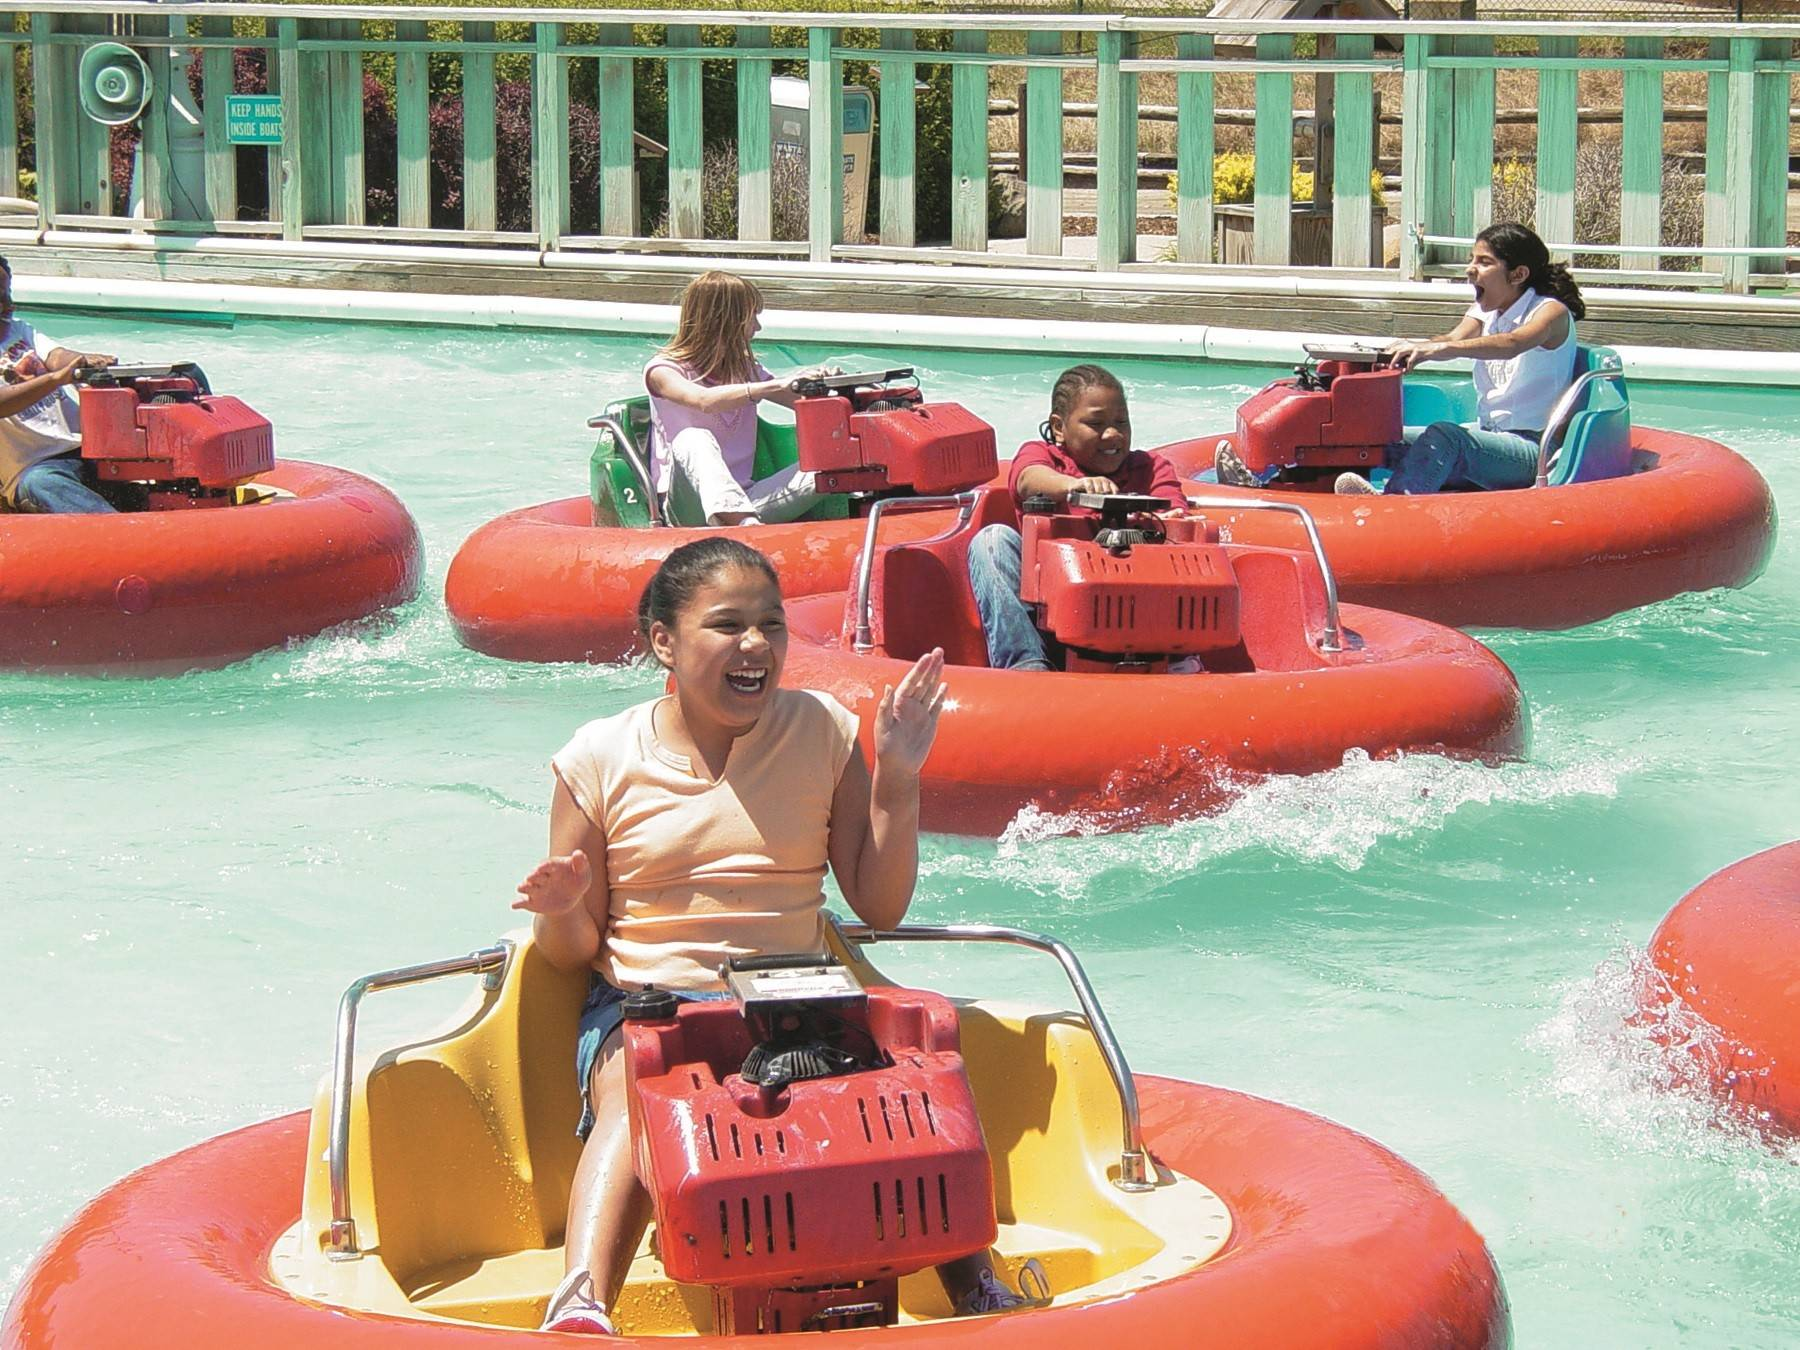 Take a spin on a bumper boat at Funway Ultimate Entertainment Center in Batavia.